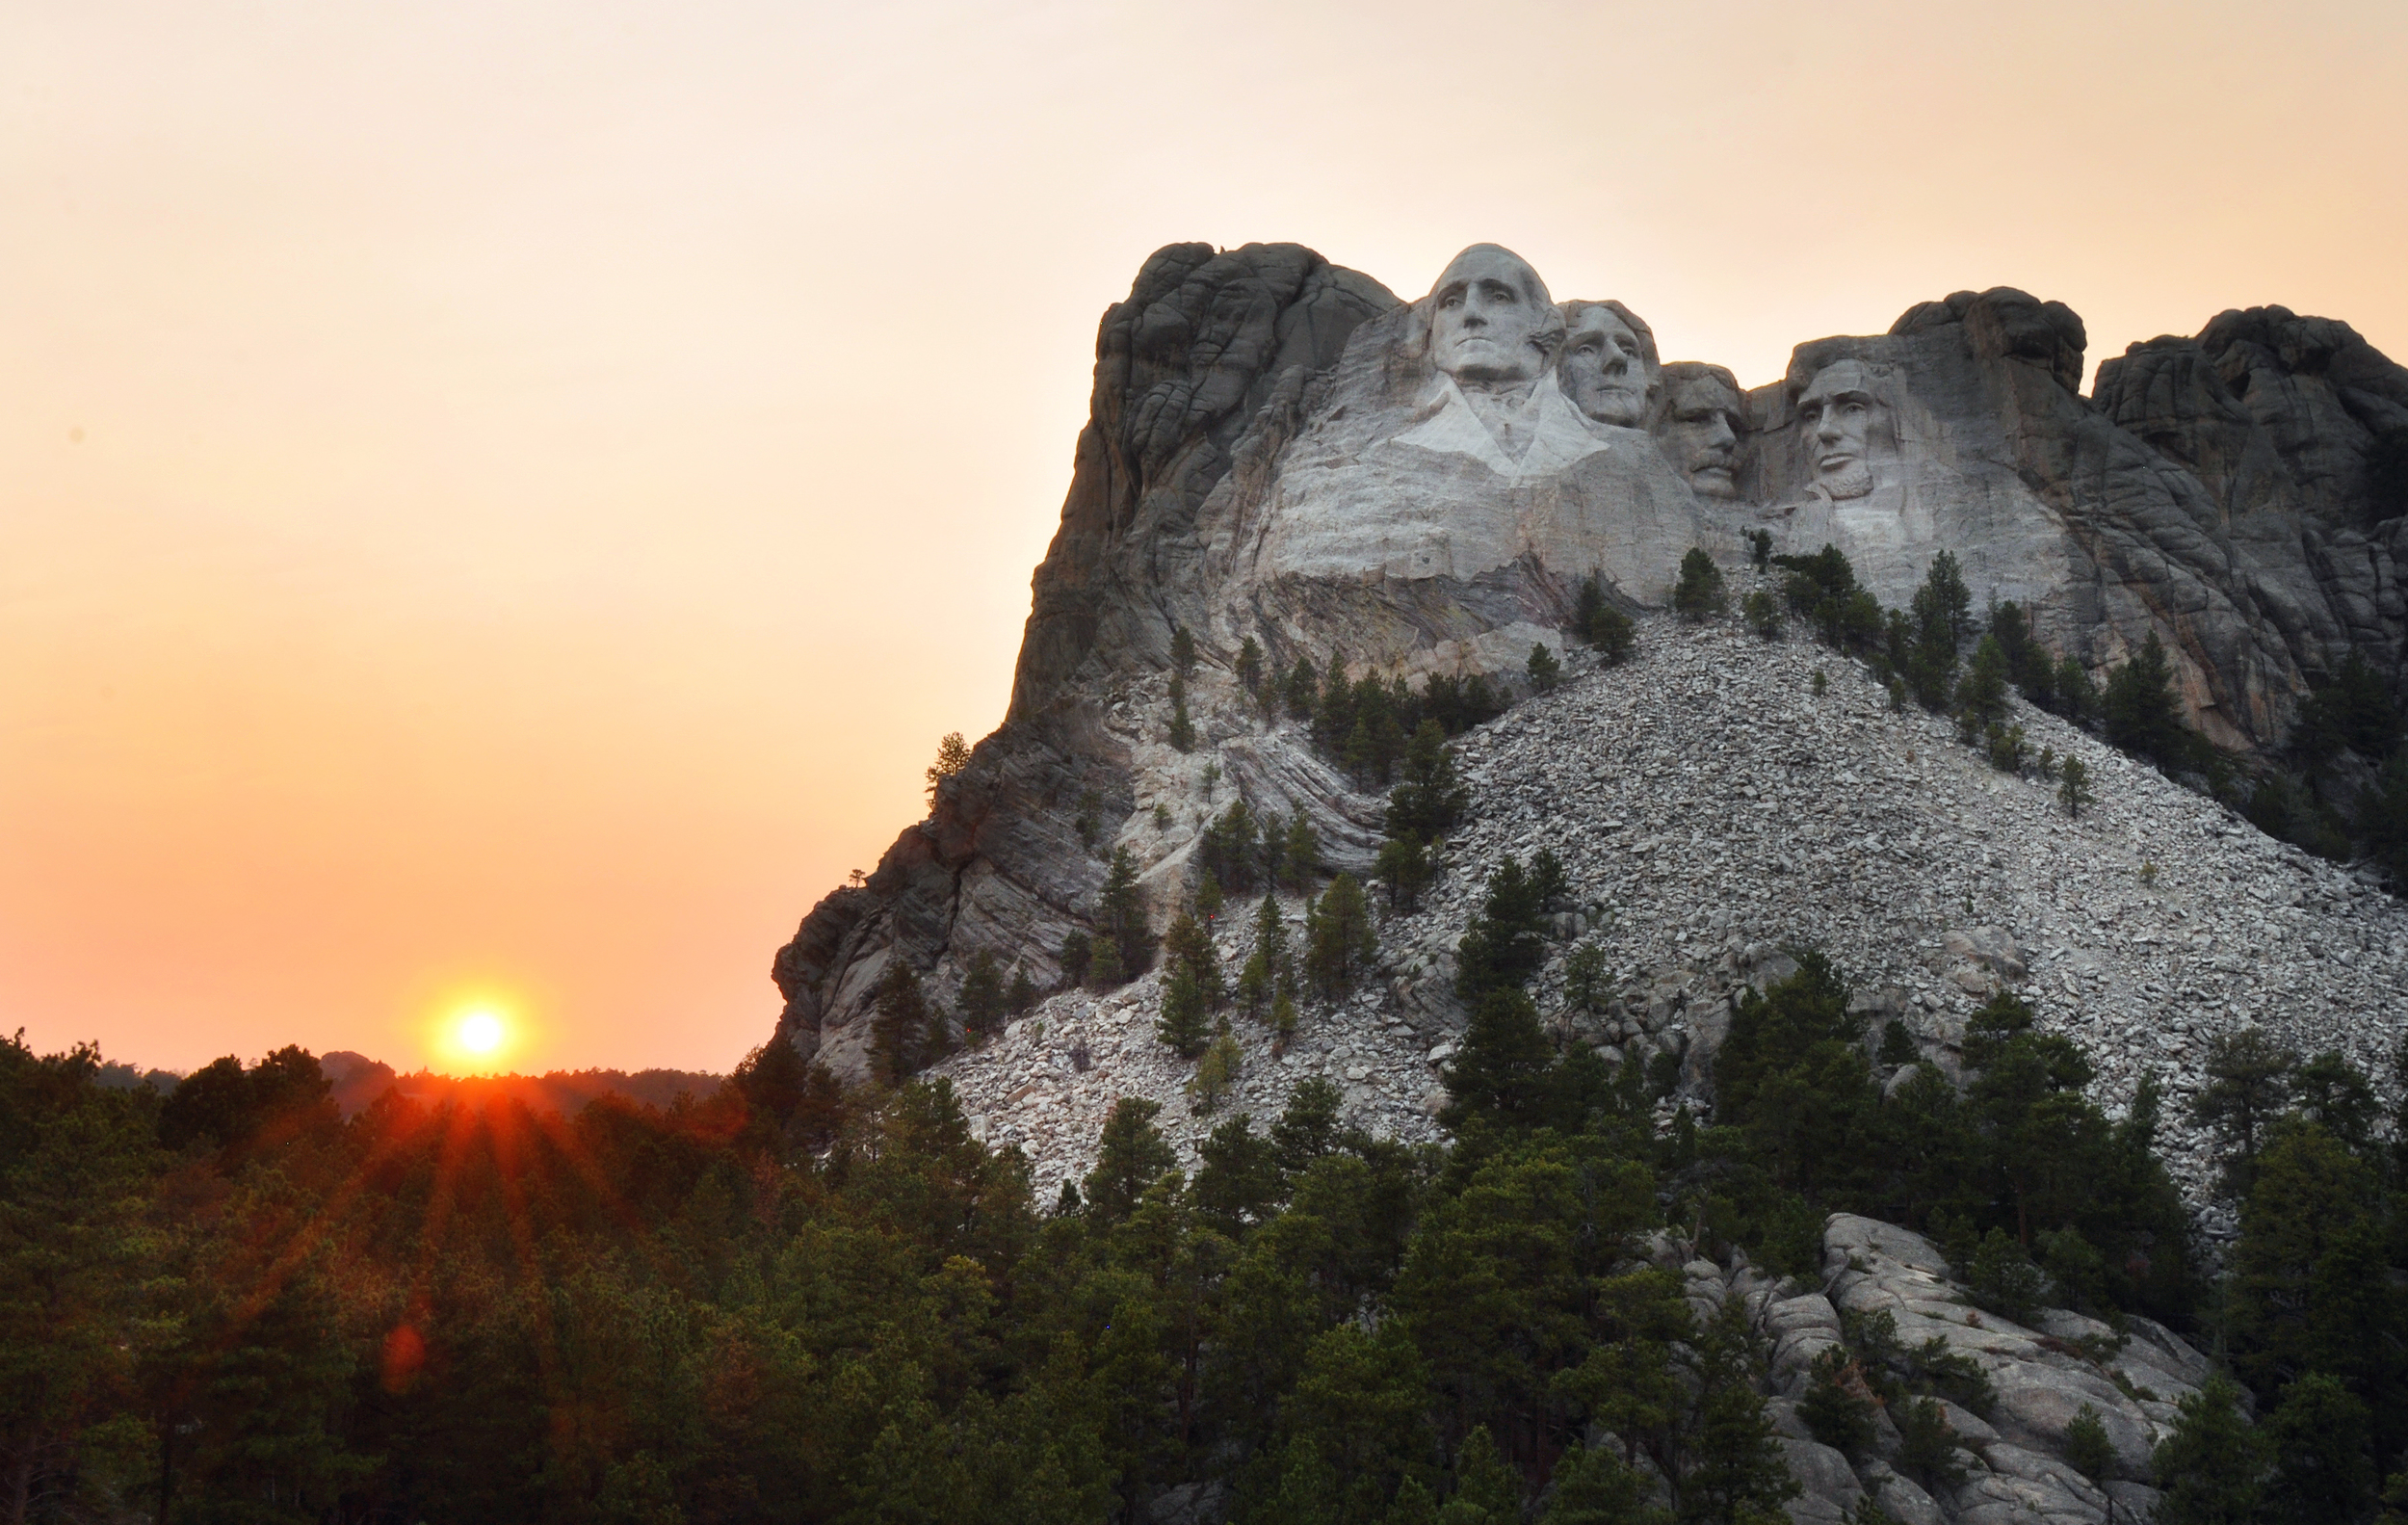 We stopped at Mt. Rushmore on the way. IT'S HUGE!